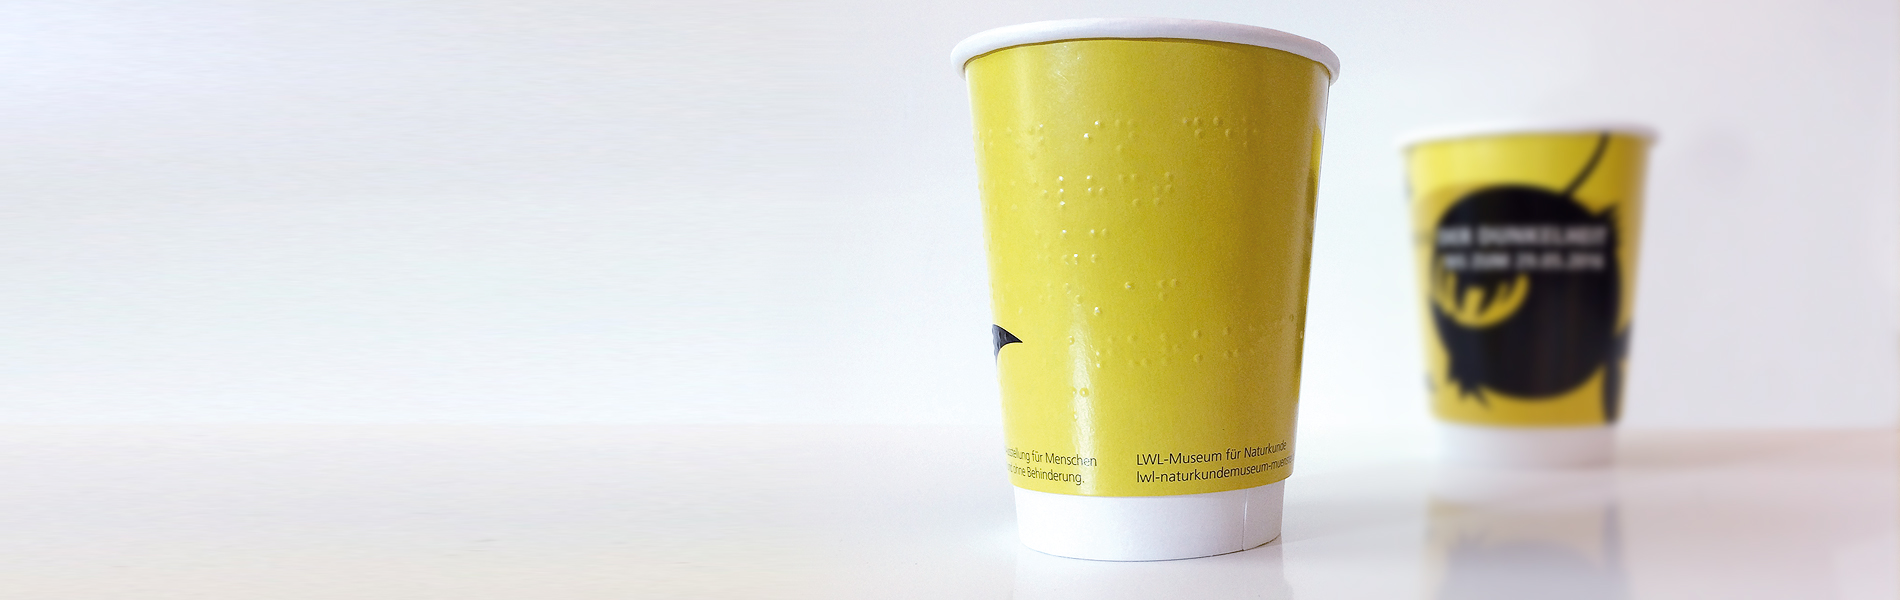 Braille printed paper cup by cupprint